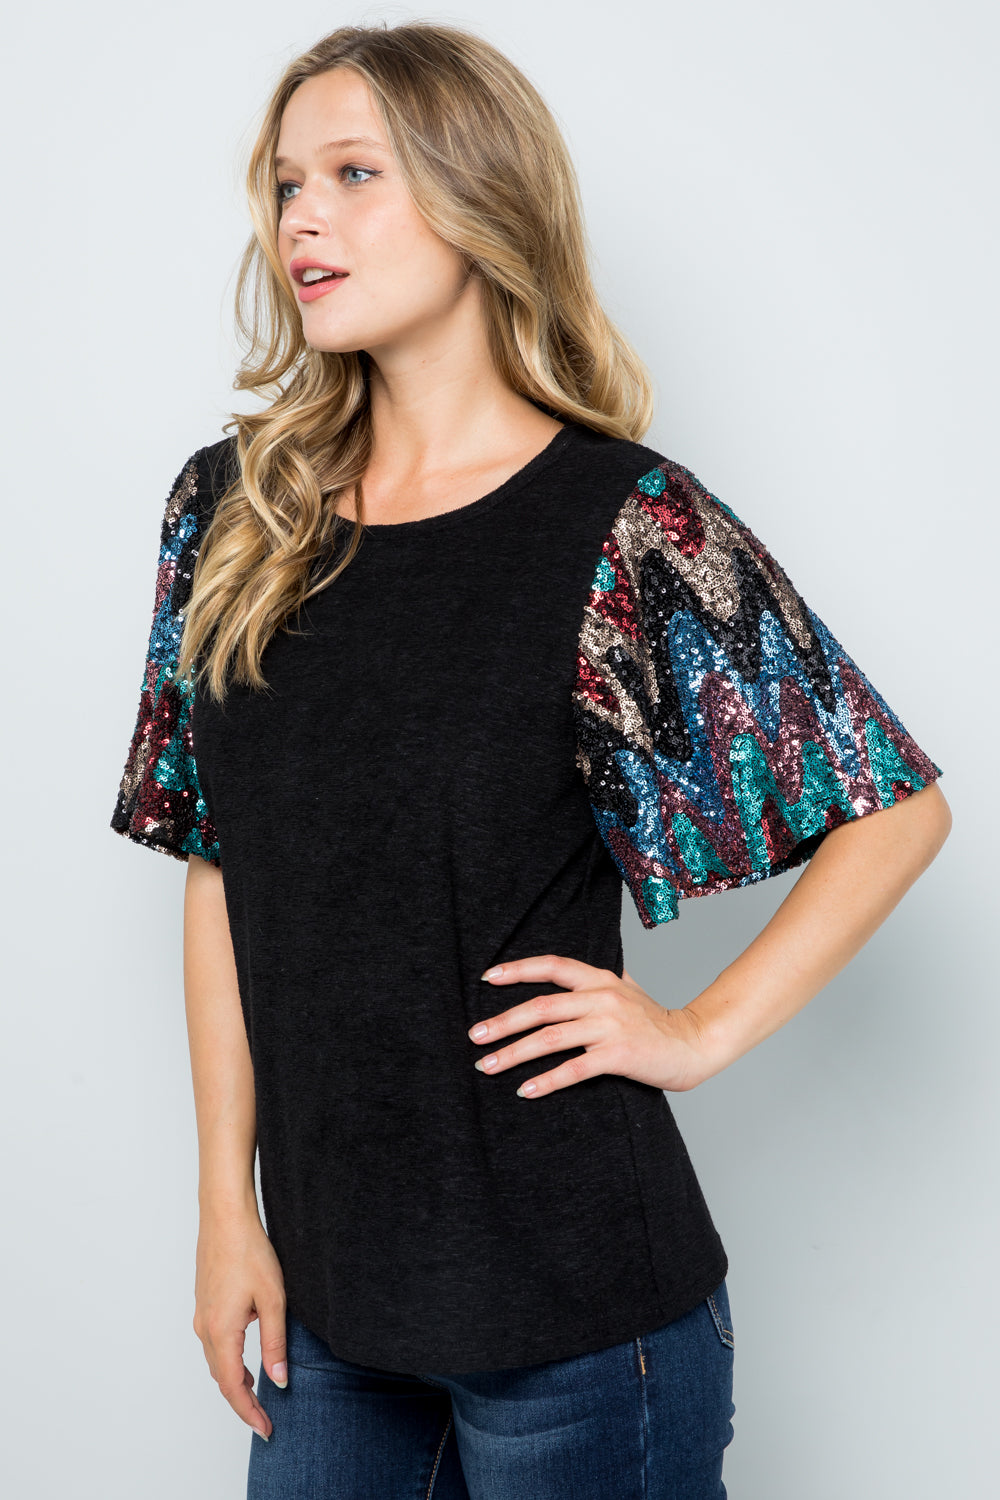 T2858 Sequins Sleeve Knit Top - Black